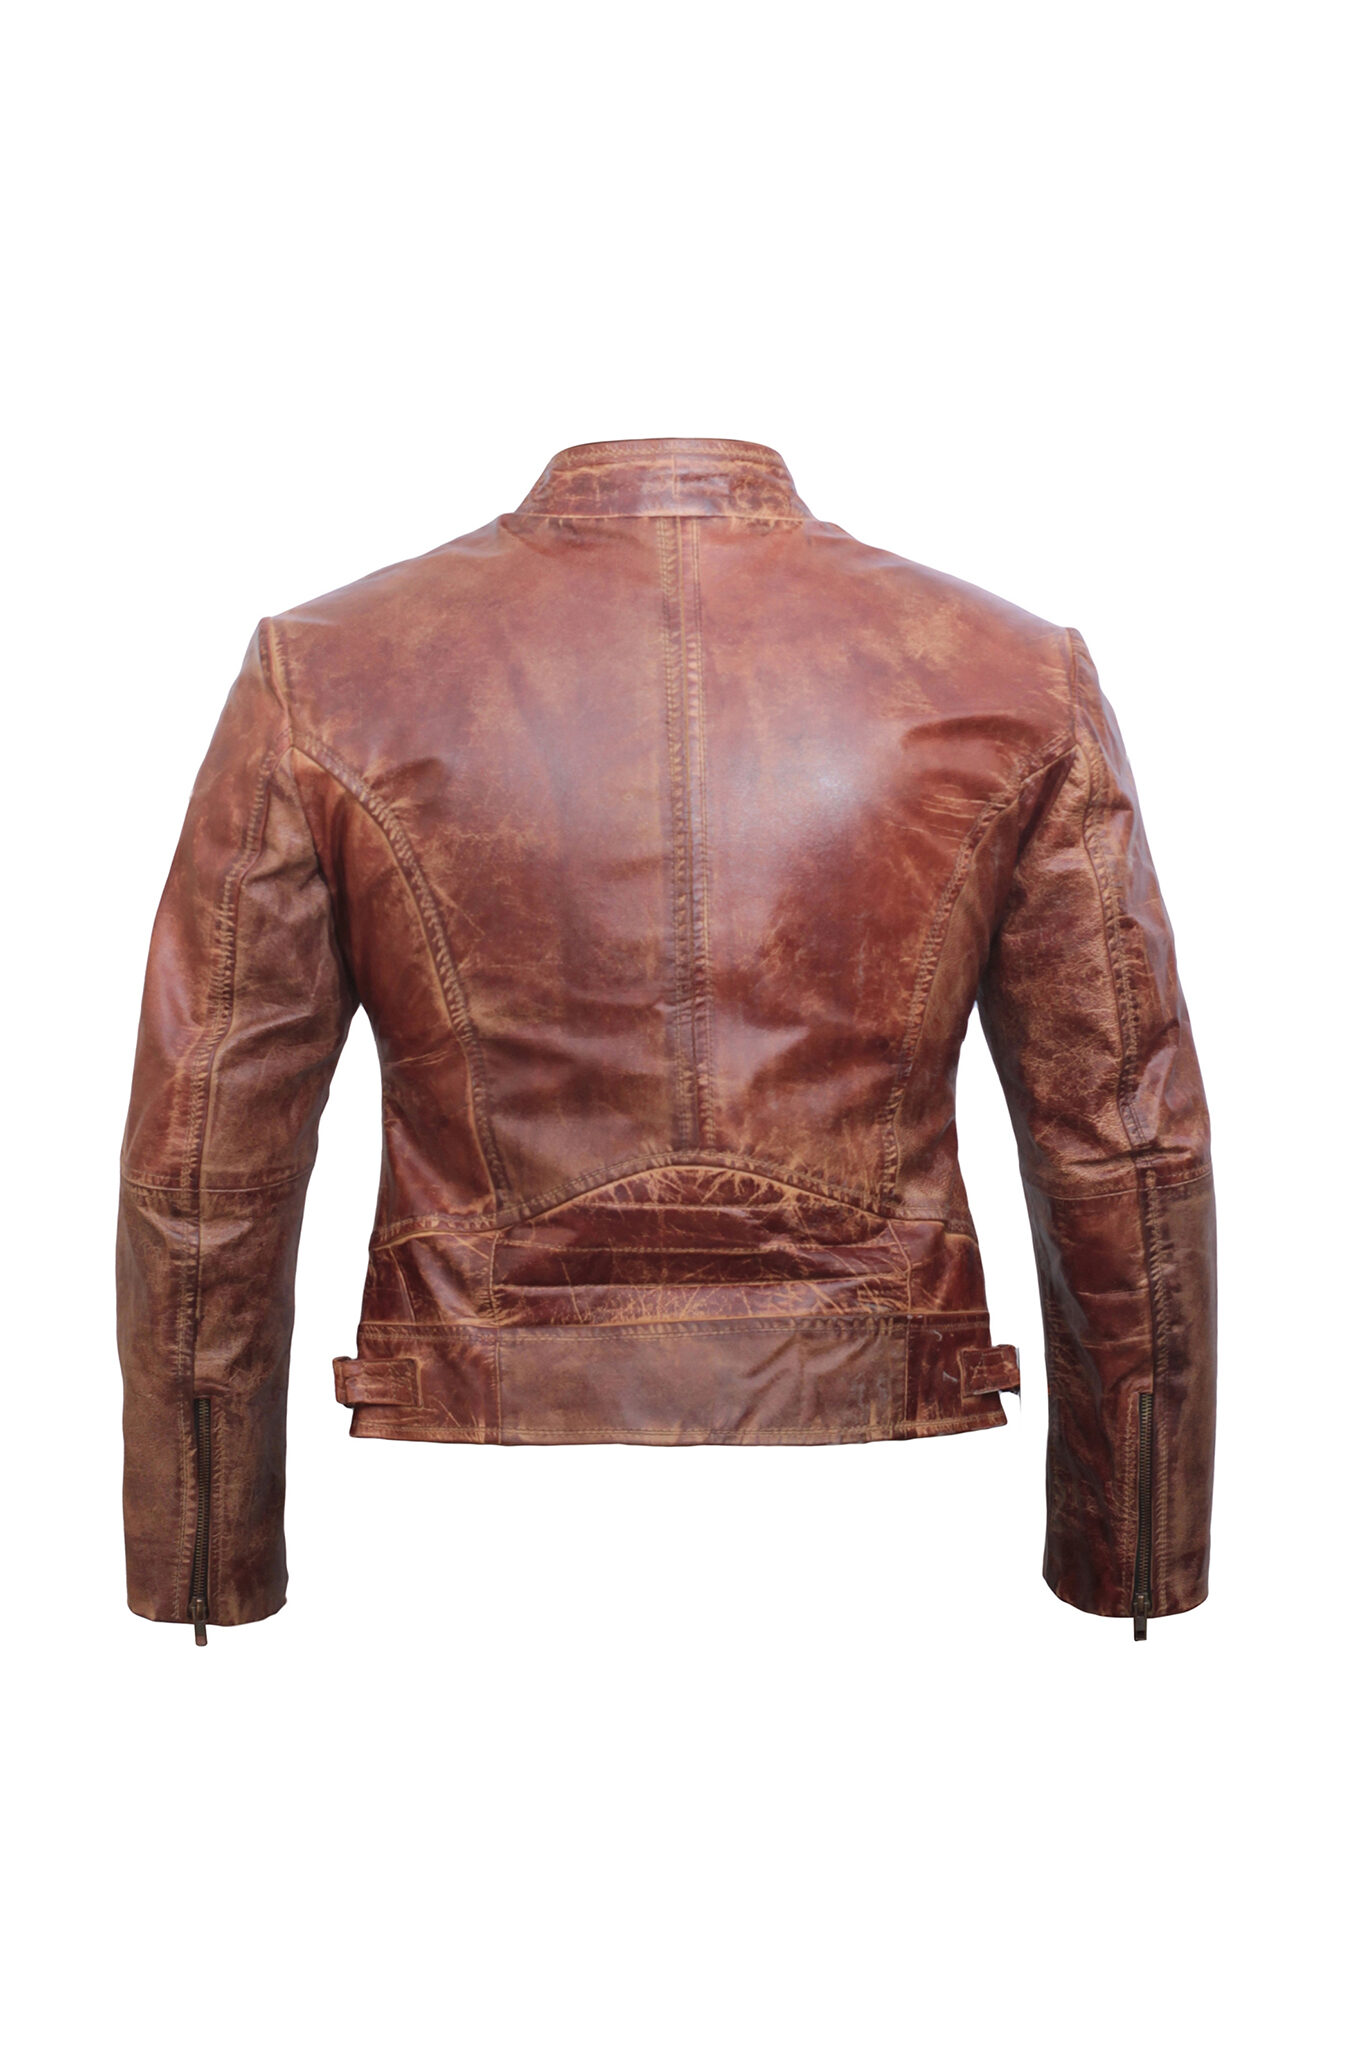 Brown Distressed Leather Jacket Women – Moto Jacket Women – Leather Jackets for Women-2